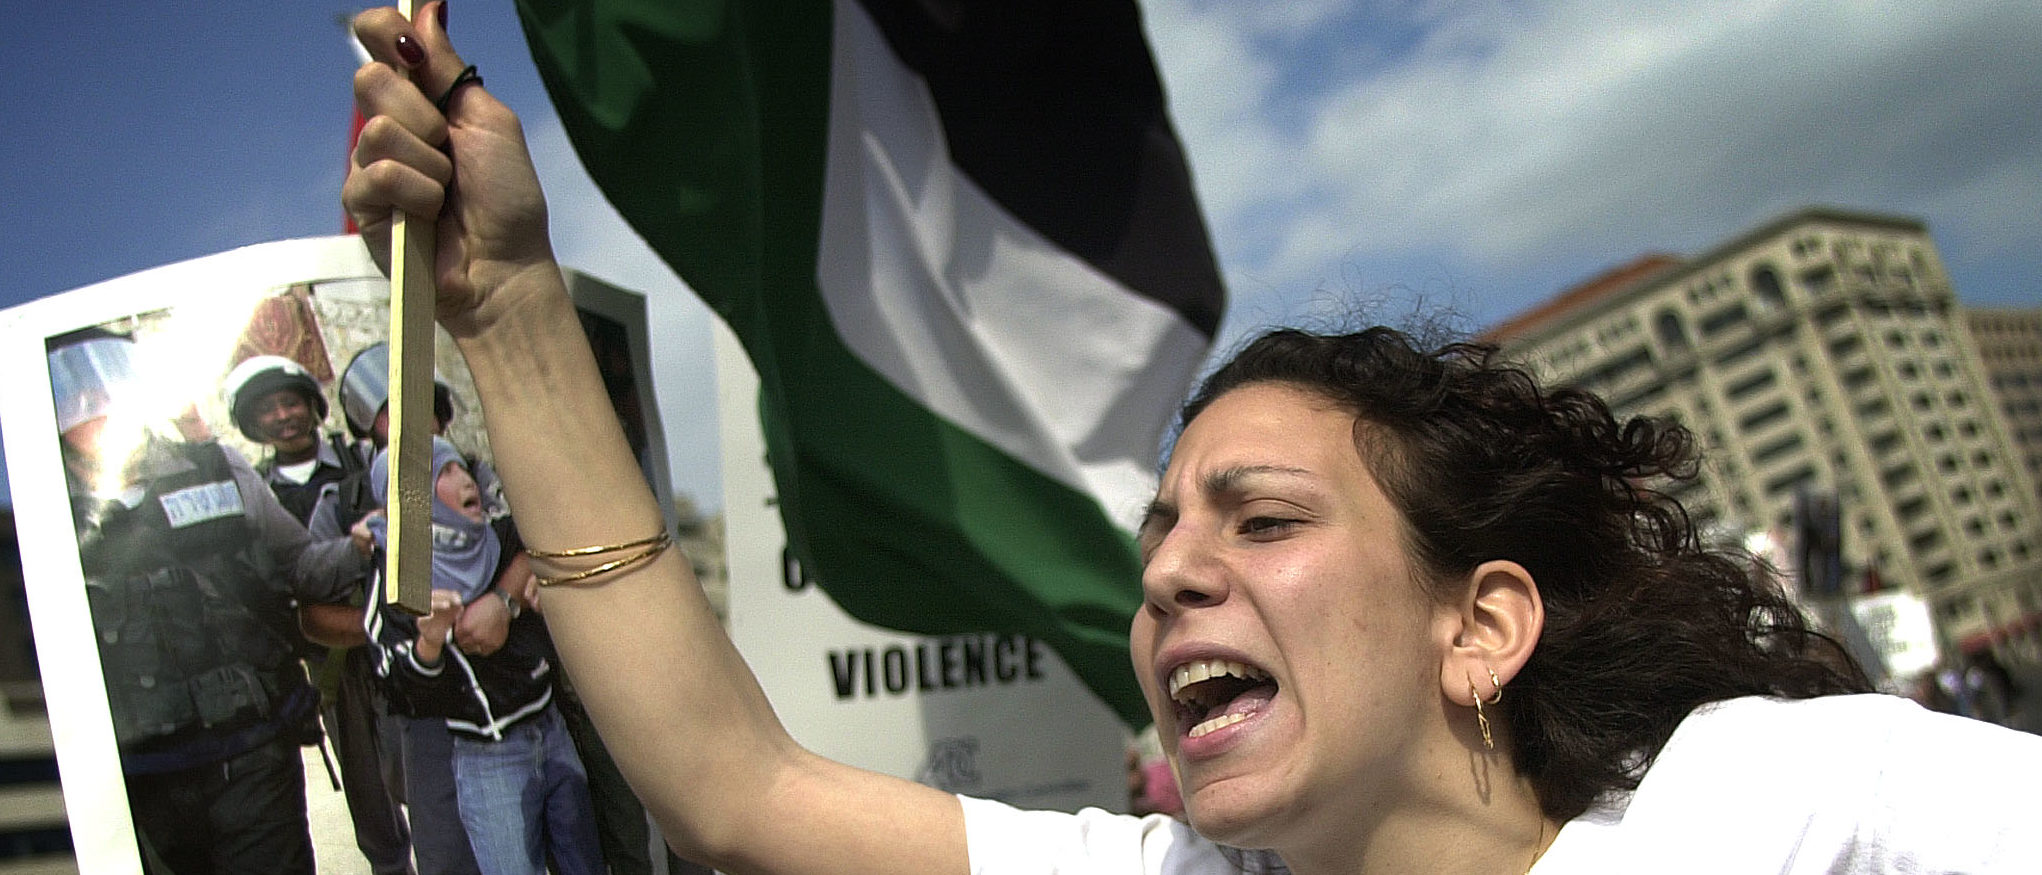 """Palestinian supporter Zeina Ashrawi, of the Students for Justice in Palestine Society of George Mason University, shouts in protest of Israel's occupation of Palesine while at a mass rally for the """"End the occupation, end the violence"""" demonstration on Freedom Plaza in Washington, DC, 30 March 2002. Israeli and Palestinian forces fought pitched street battles in the West Bank town of Ramallah 30 March as the siege of Yasser Arafat went into a second day with the UN Security Council calling for an Israeli withdrawal. AFP PHOTO/Jim WATSON (Photo credit should read JIM WATSON/AFP/Getty Images)"""